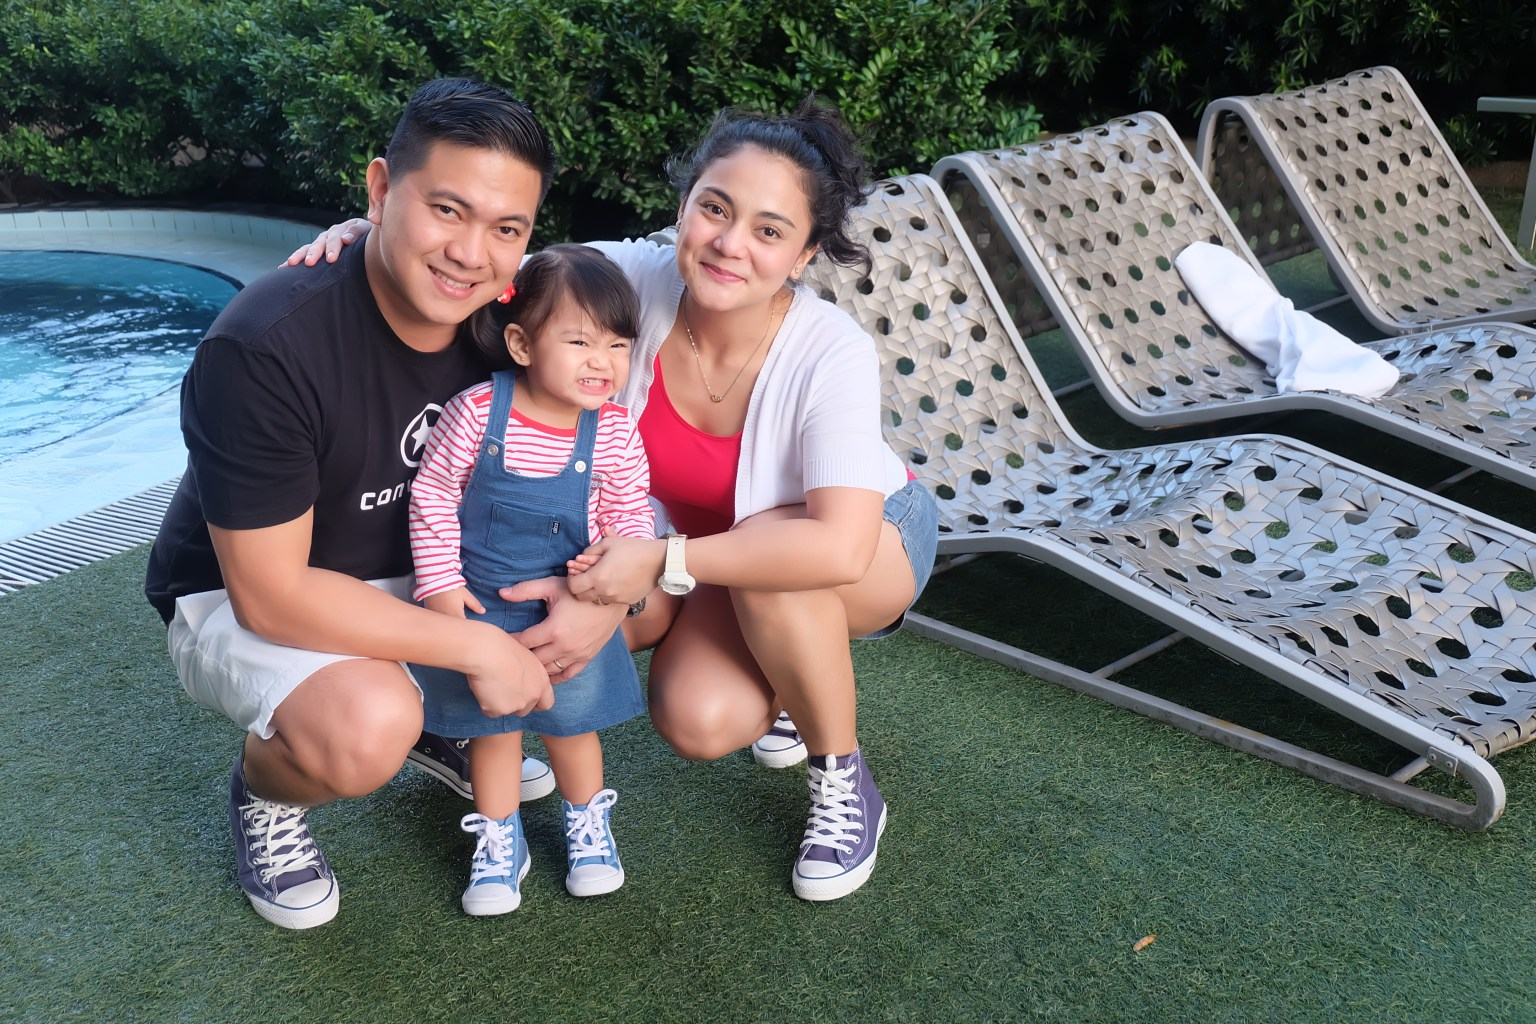 Nish with Hubby and Daughter by the Pool